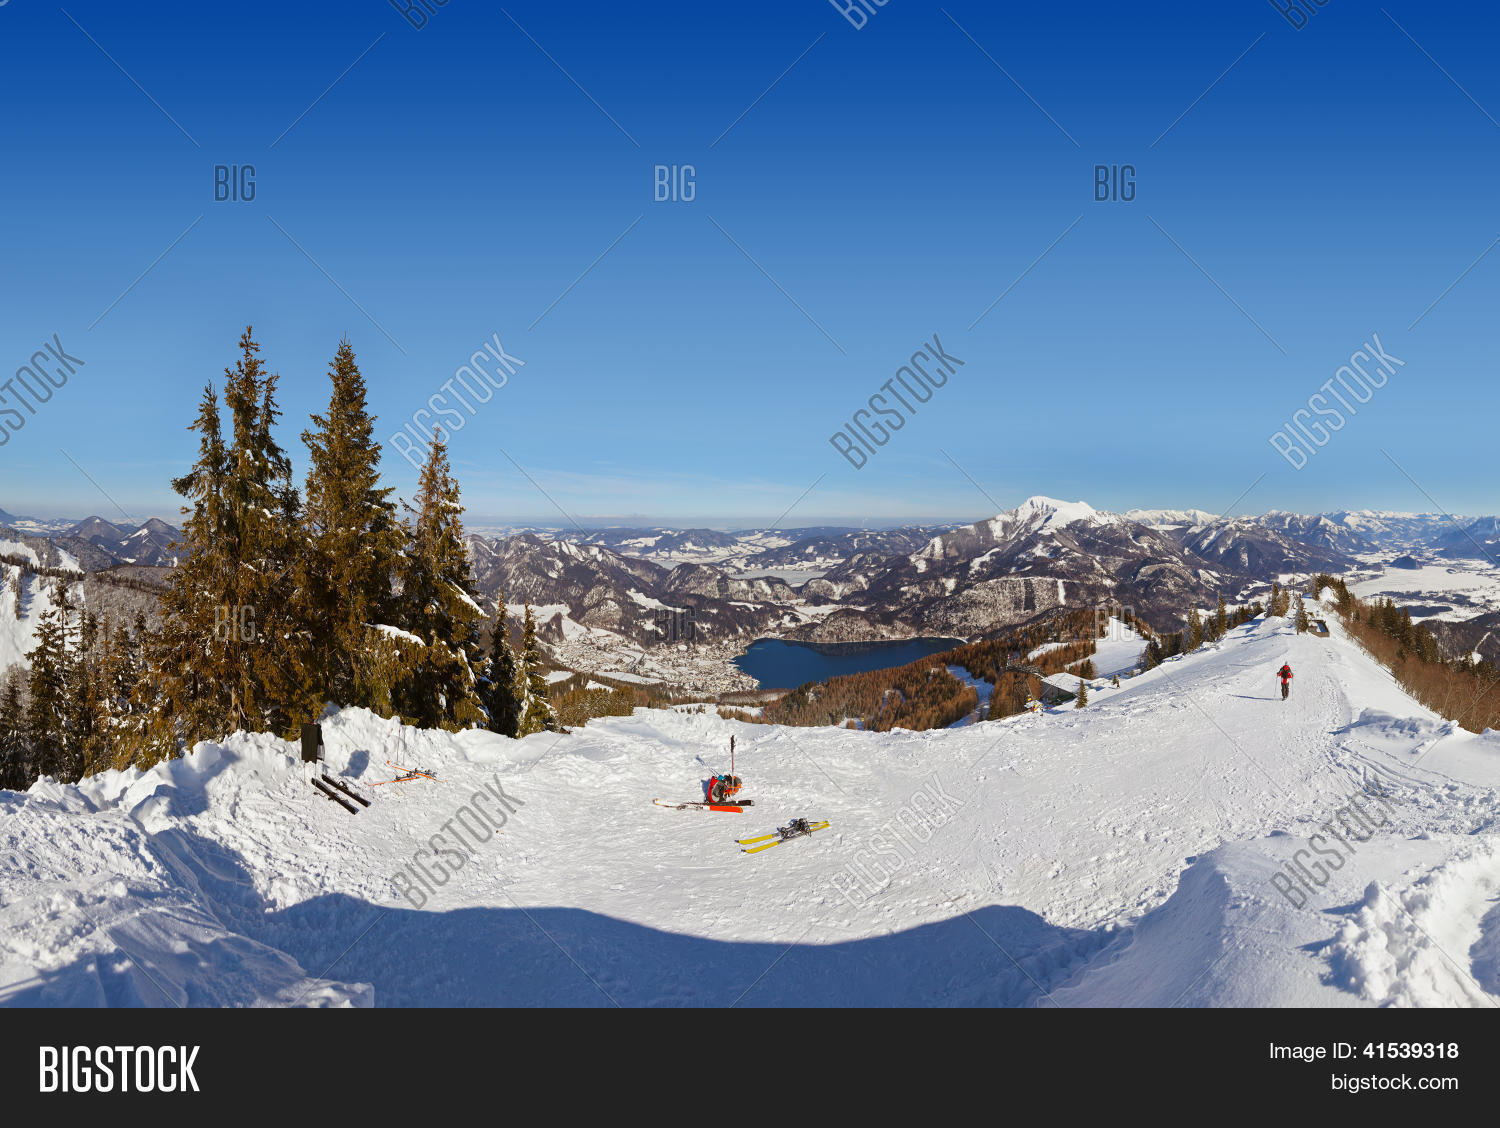 alpine,alps,austria,background,blue,building,cabin,cable,cableway,carriage,christmas,europe,forest,gilgen,hills,holiday,hotel,house,lake,landscape,leisure,lift,mountains,nature,new,outdoor,panorama,peak,resort,rocks,salzburg,ski,skier,skiing,snow,sport,st,sun,tirol,tourism,track,travel,trees,vacations,village,winter,wolfgangsee,year,zwolferhorn